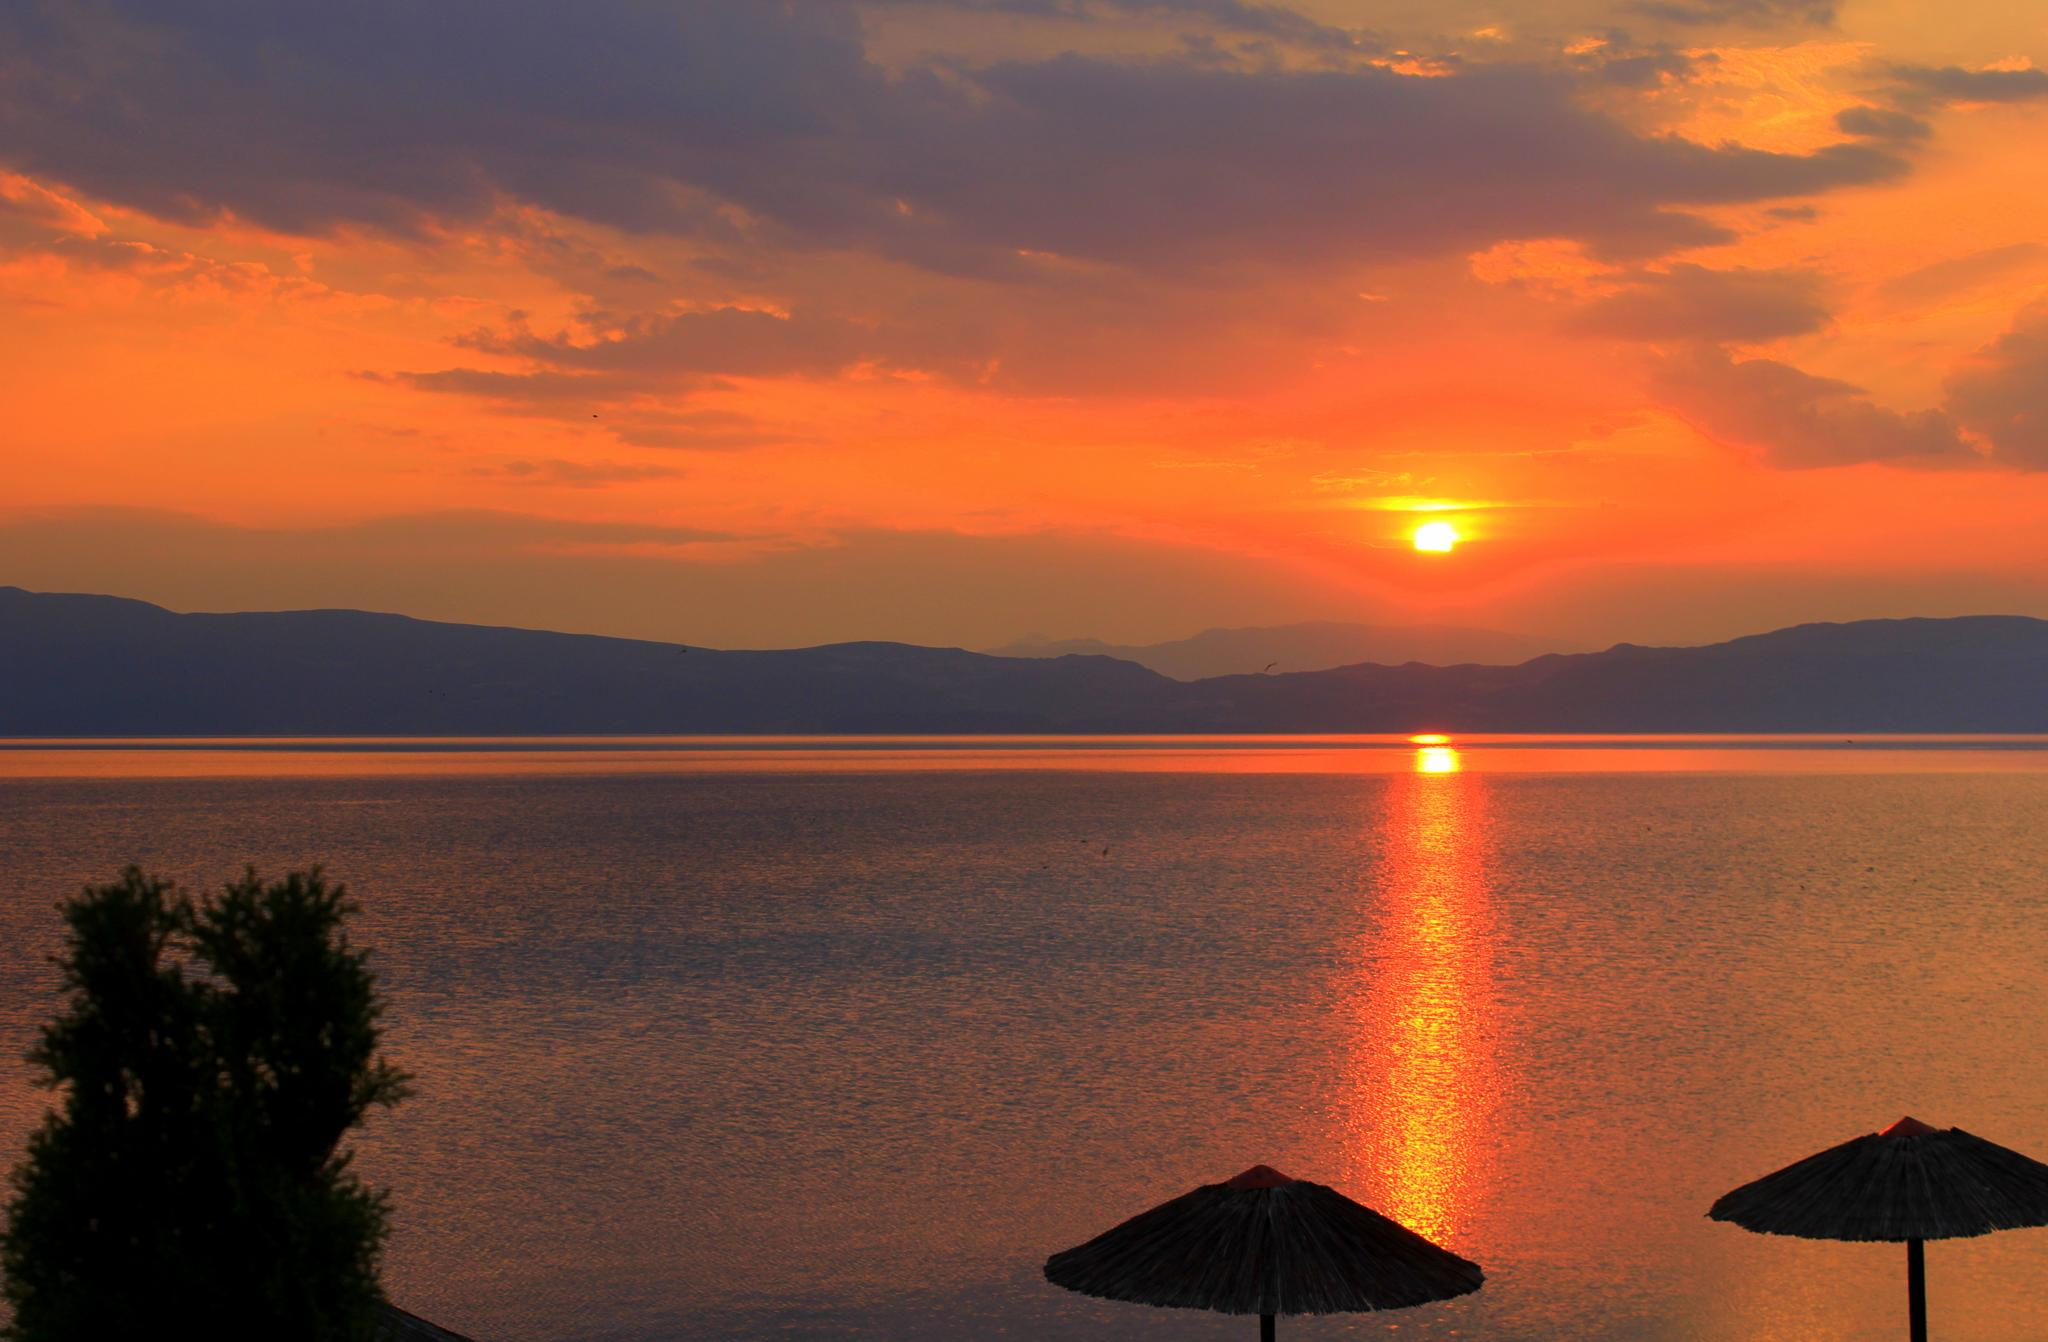 Sunset over Lake Ohrid by selien.kimpe